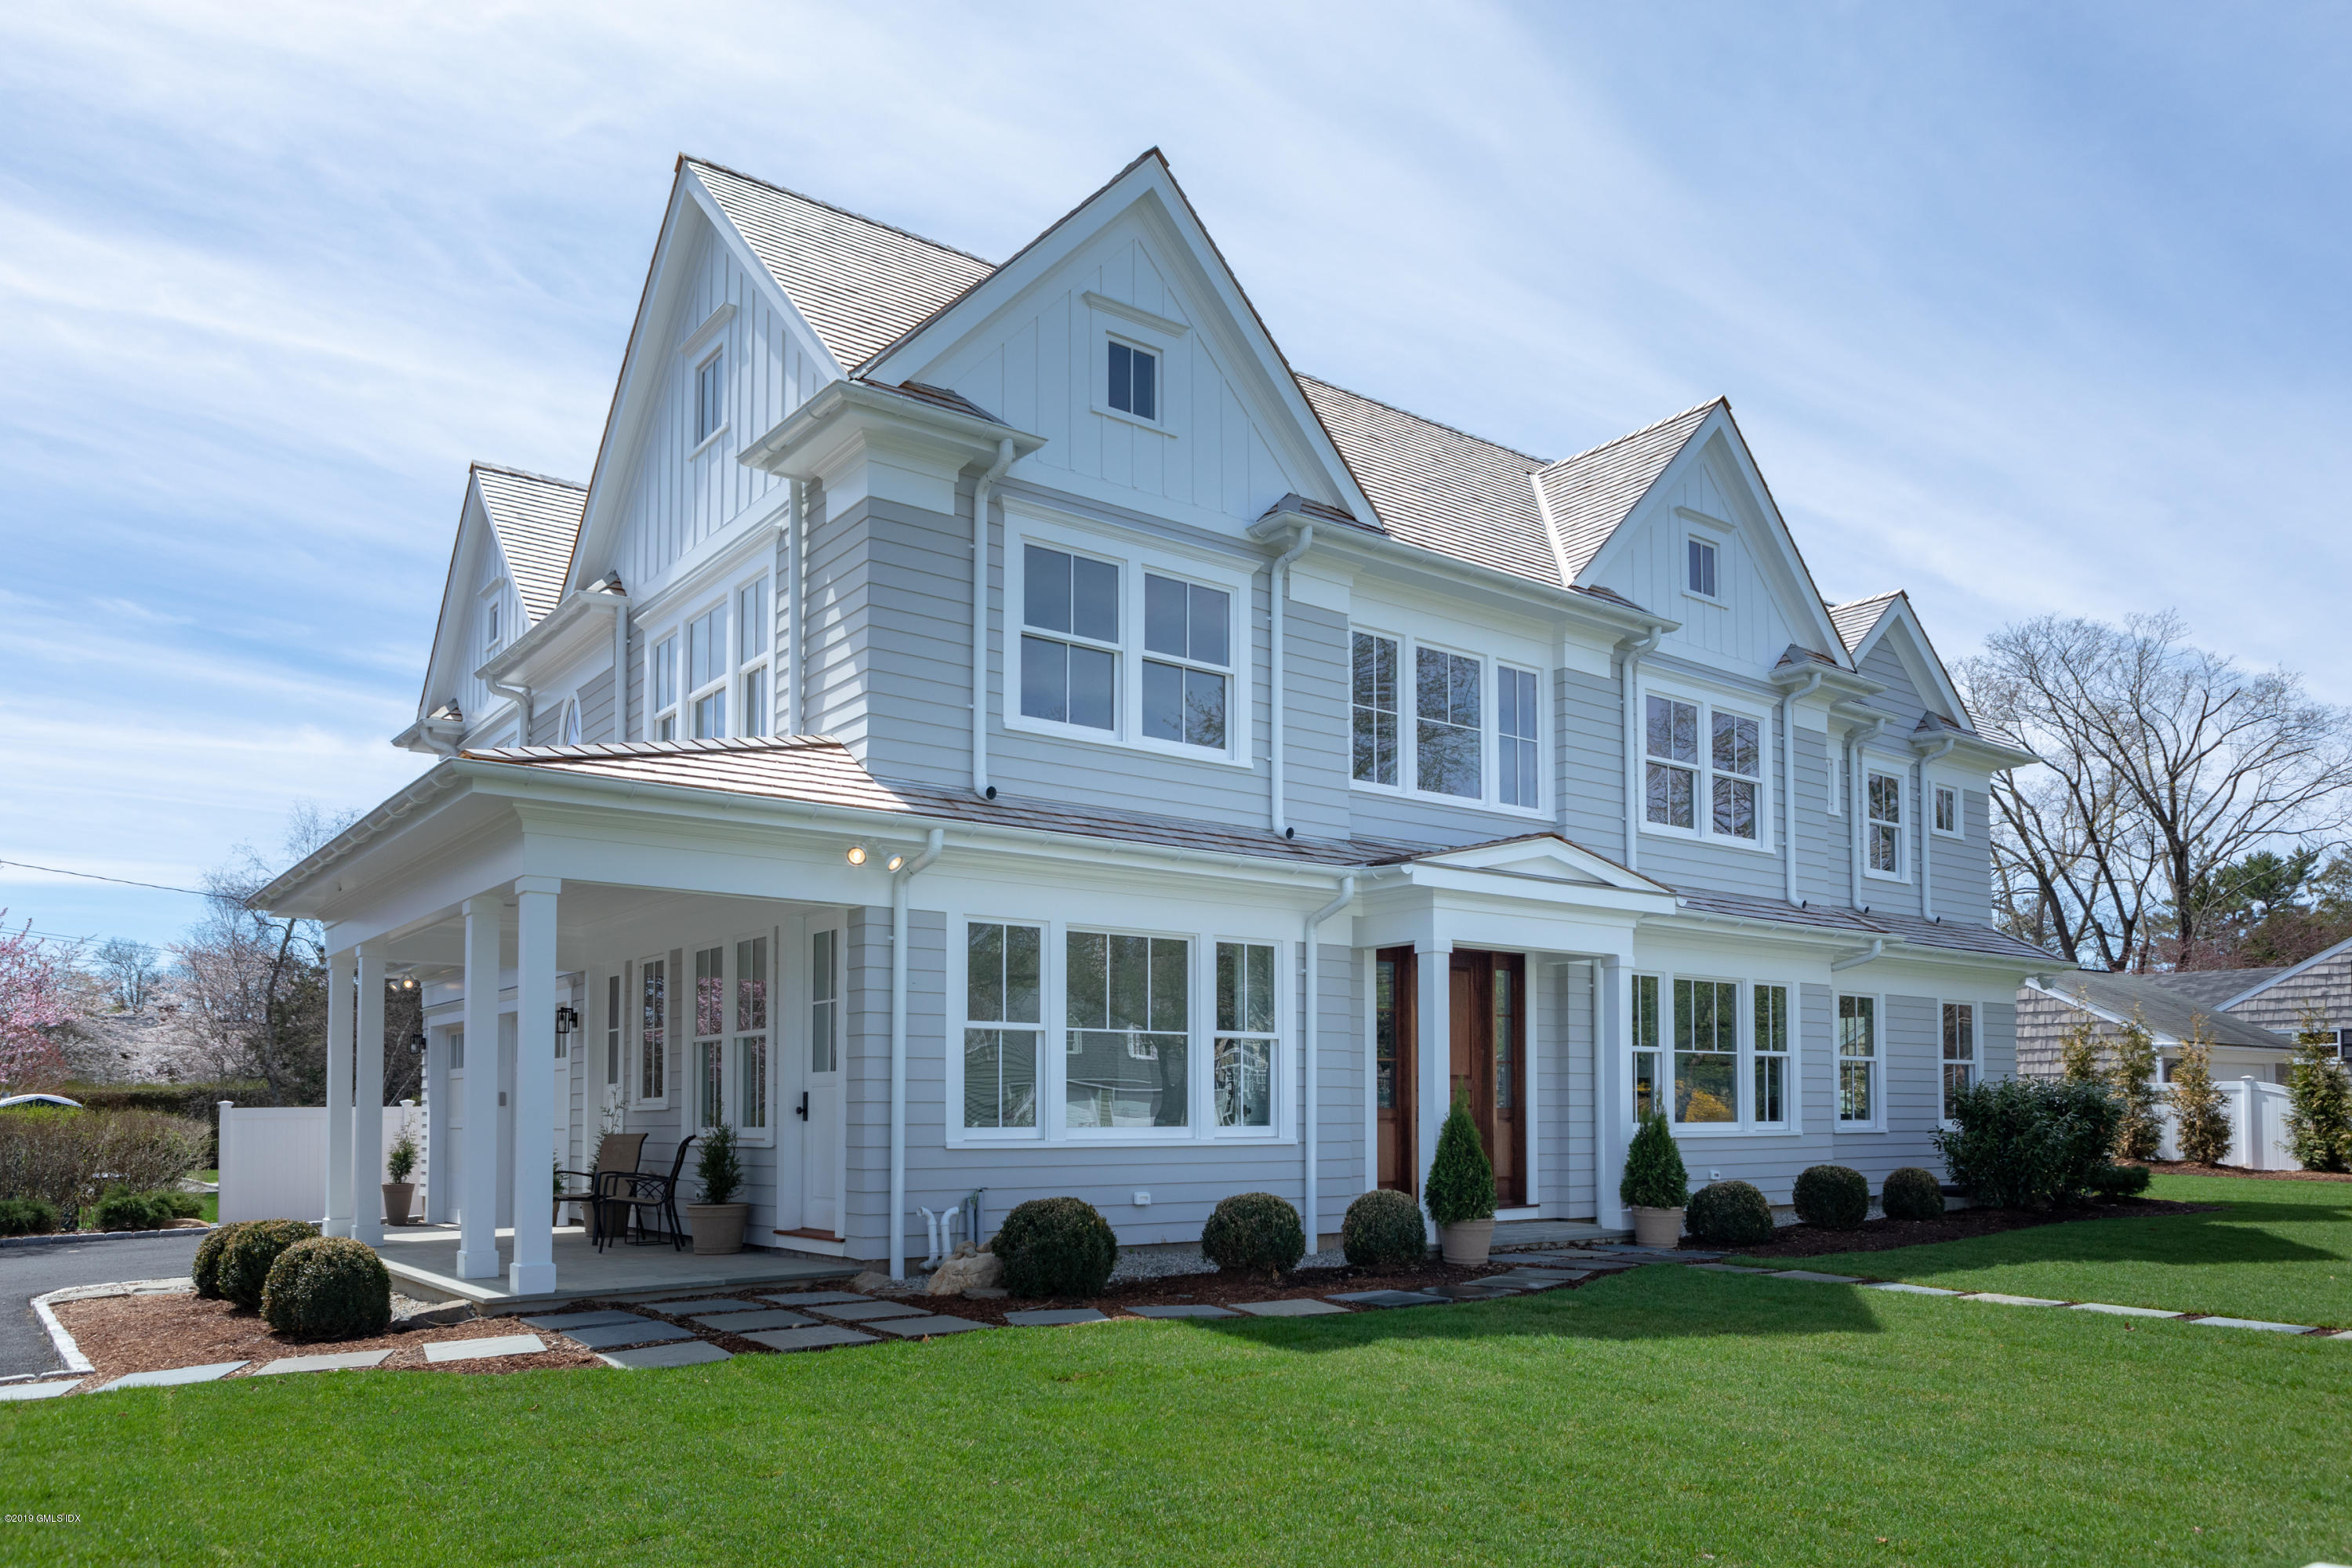 1 Tower Lane,Old Greenwich,Connecticut 06870,6 Bedrooms Bedrooms,6 BathroomsBathrooms,Single family,Tower,105683